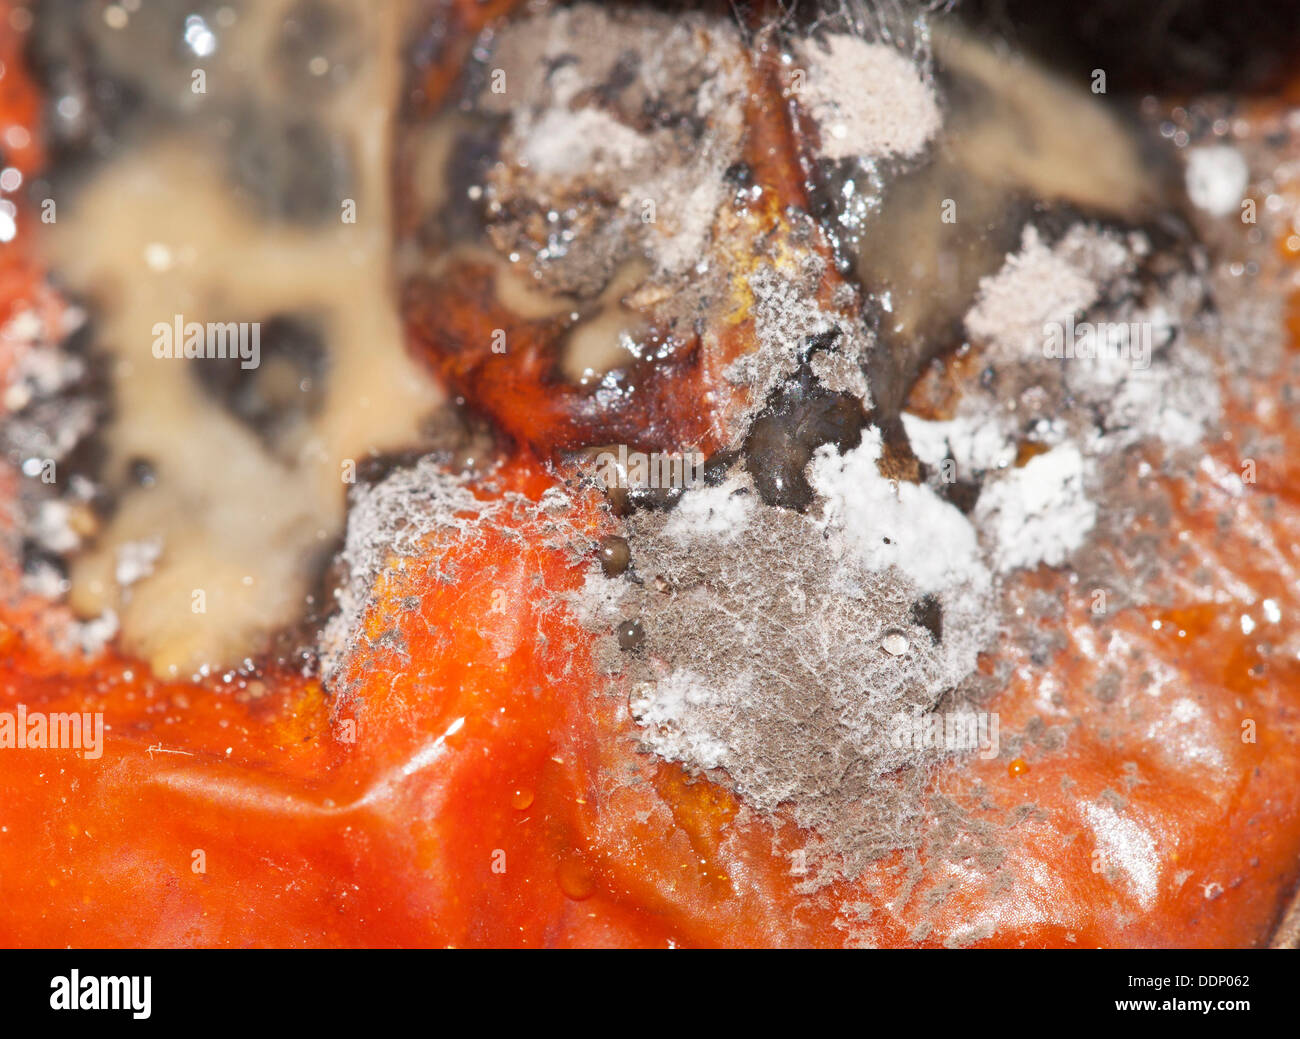 Mould, mildew culture, food mould, tomato - Stock Image